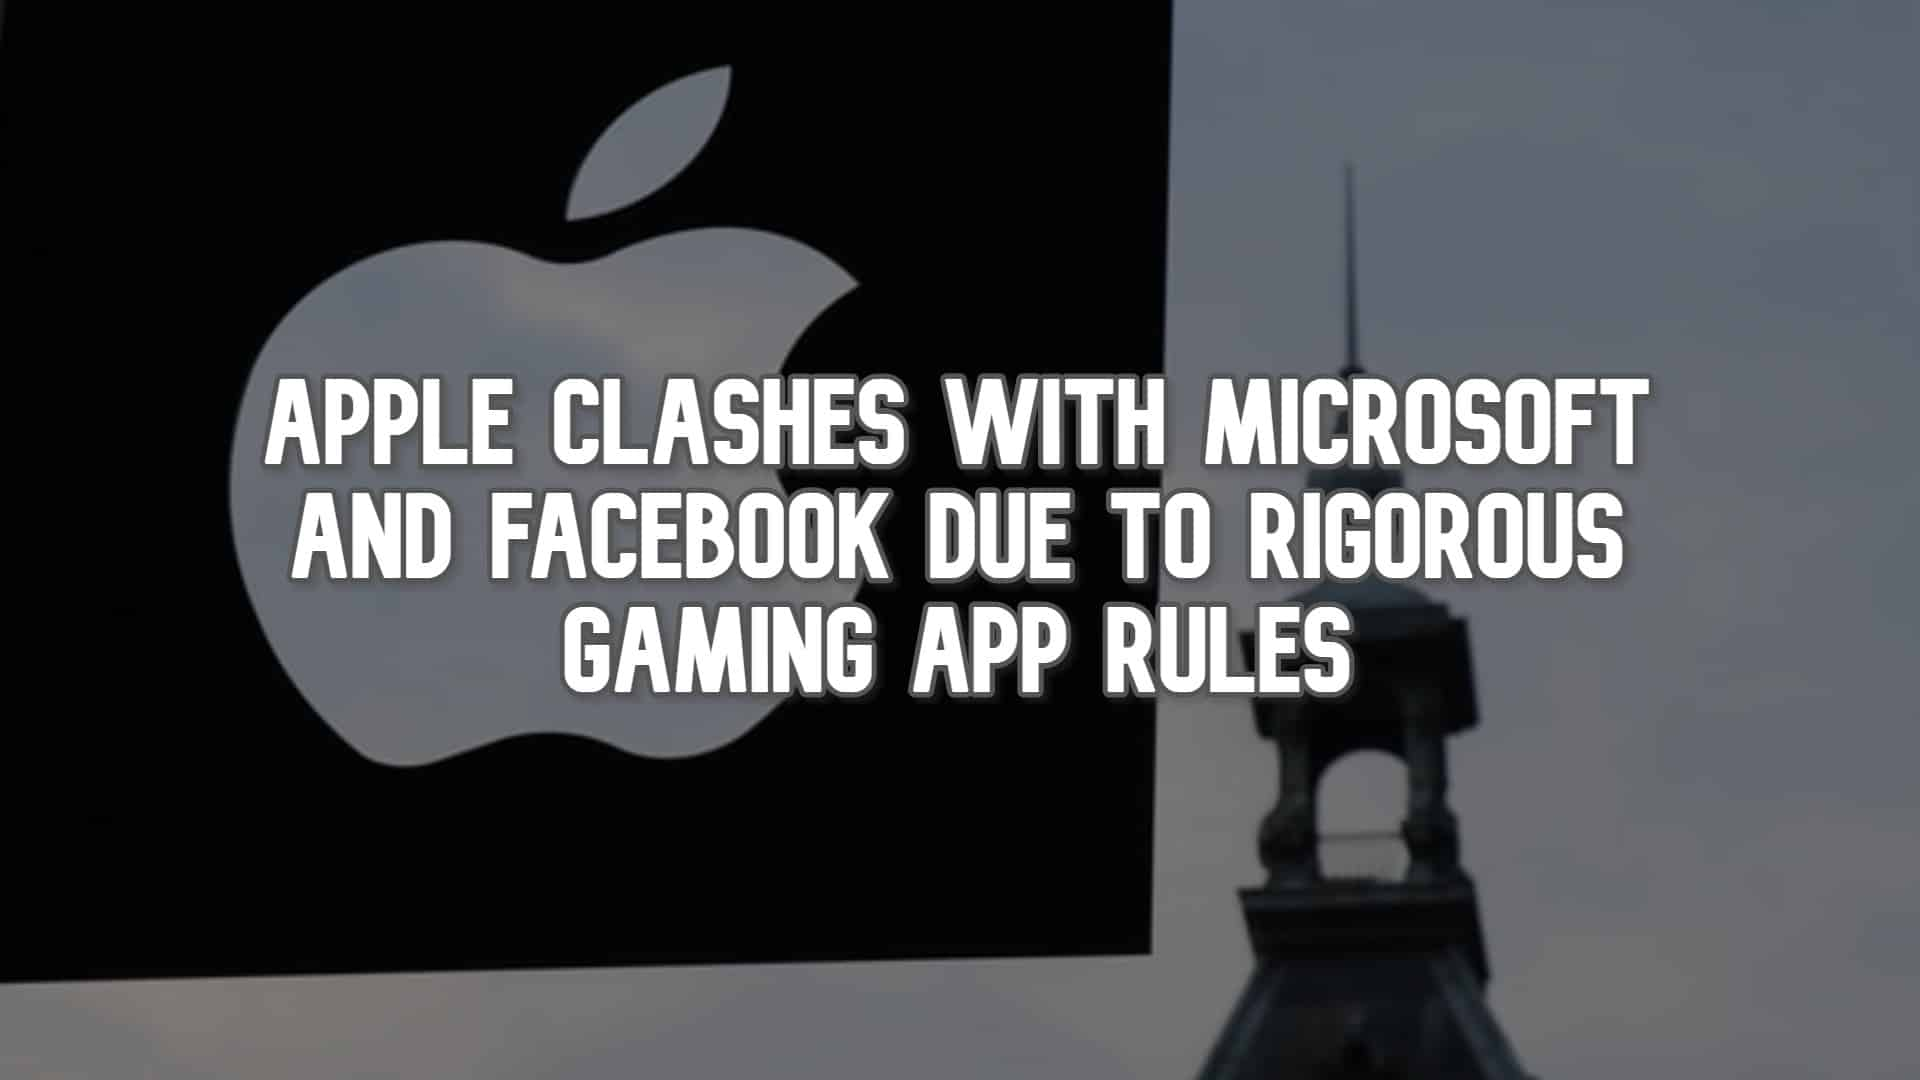 Apple Clashes with Microsoft and Facebook due to Rigorous Gaming App Rules